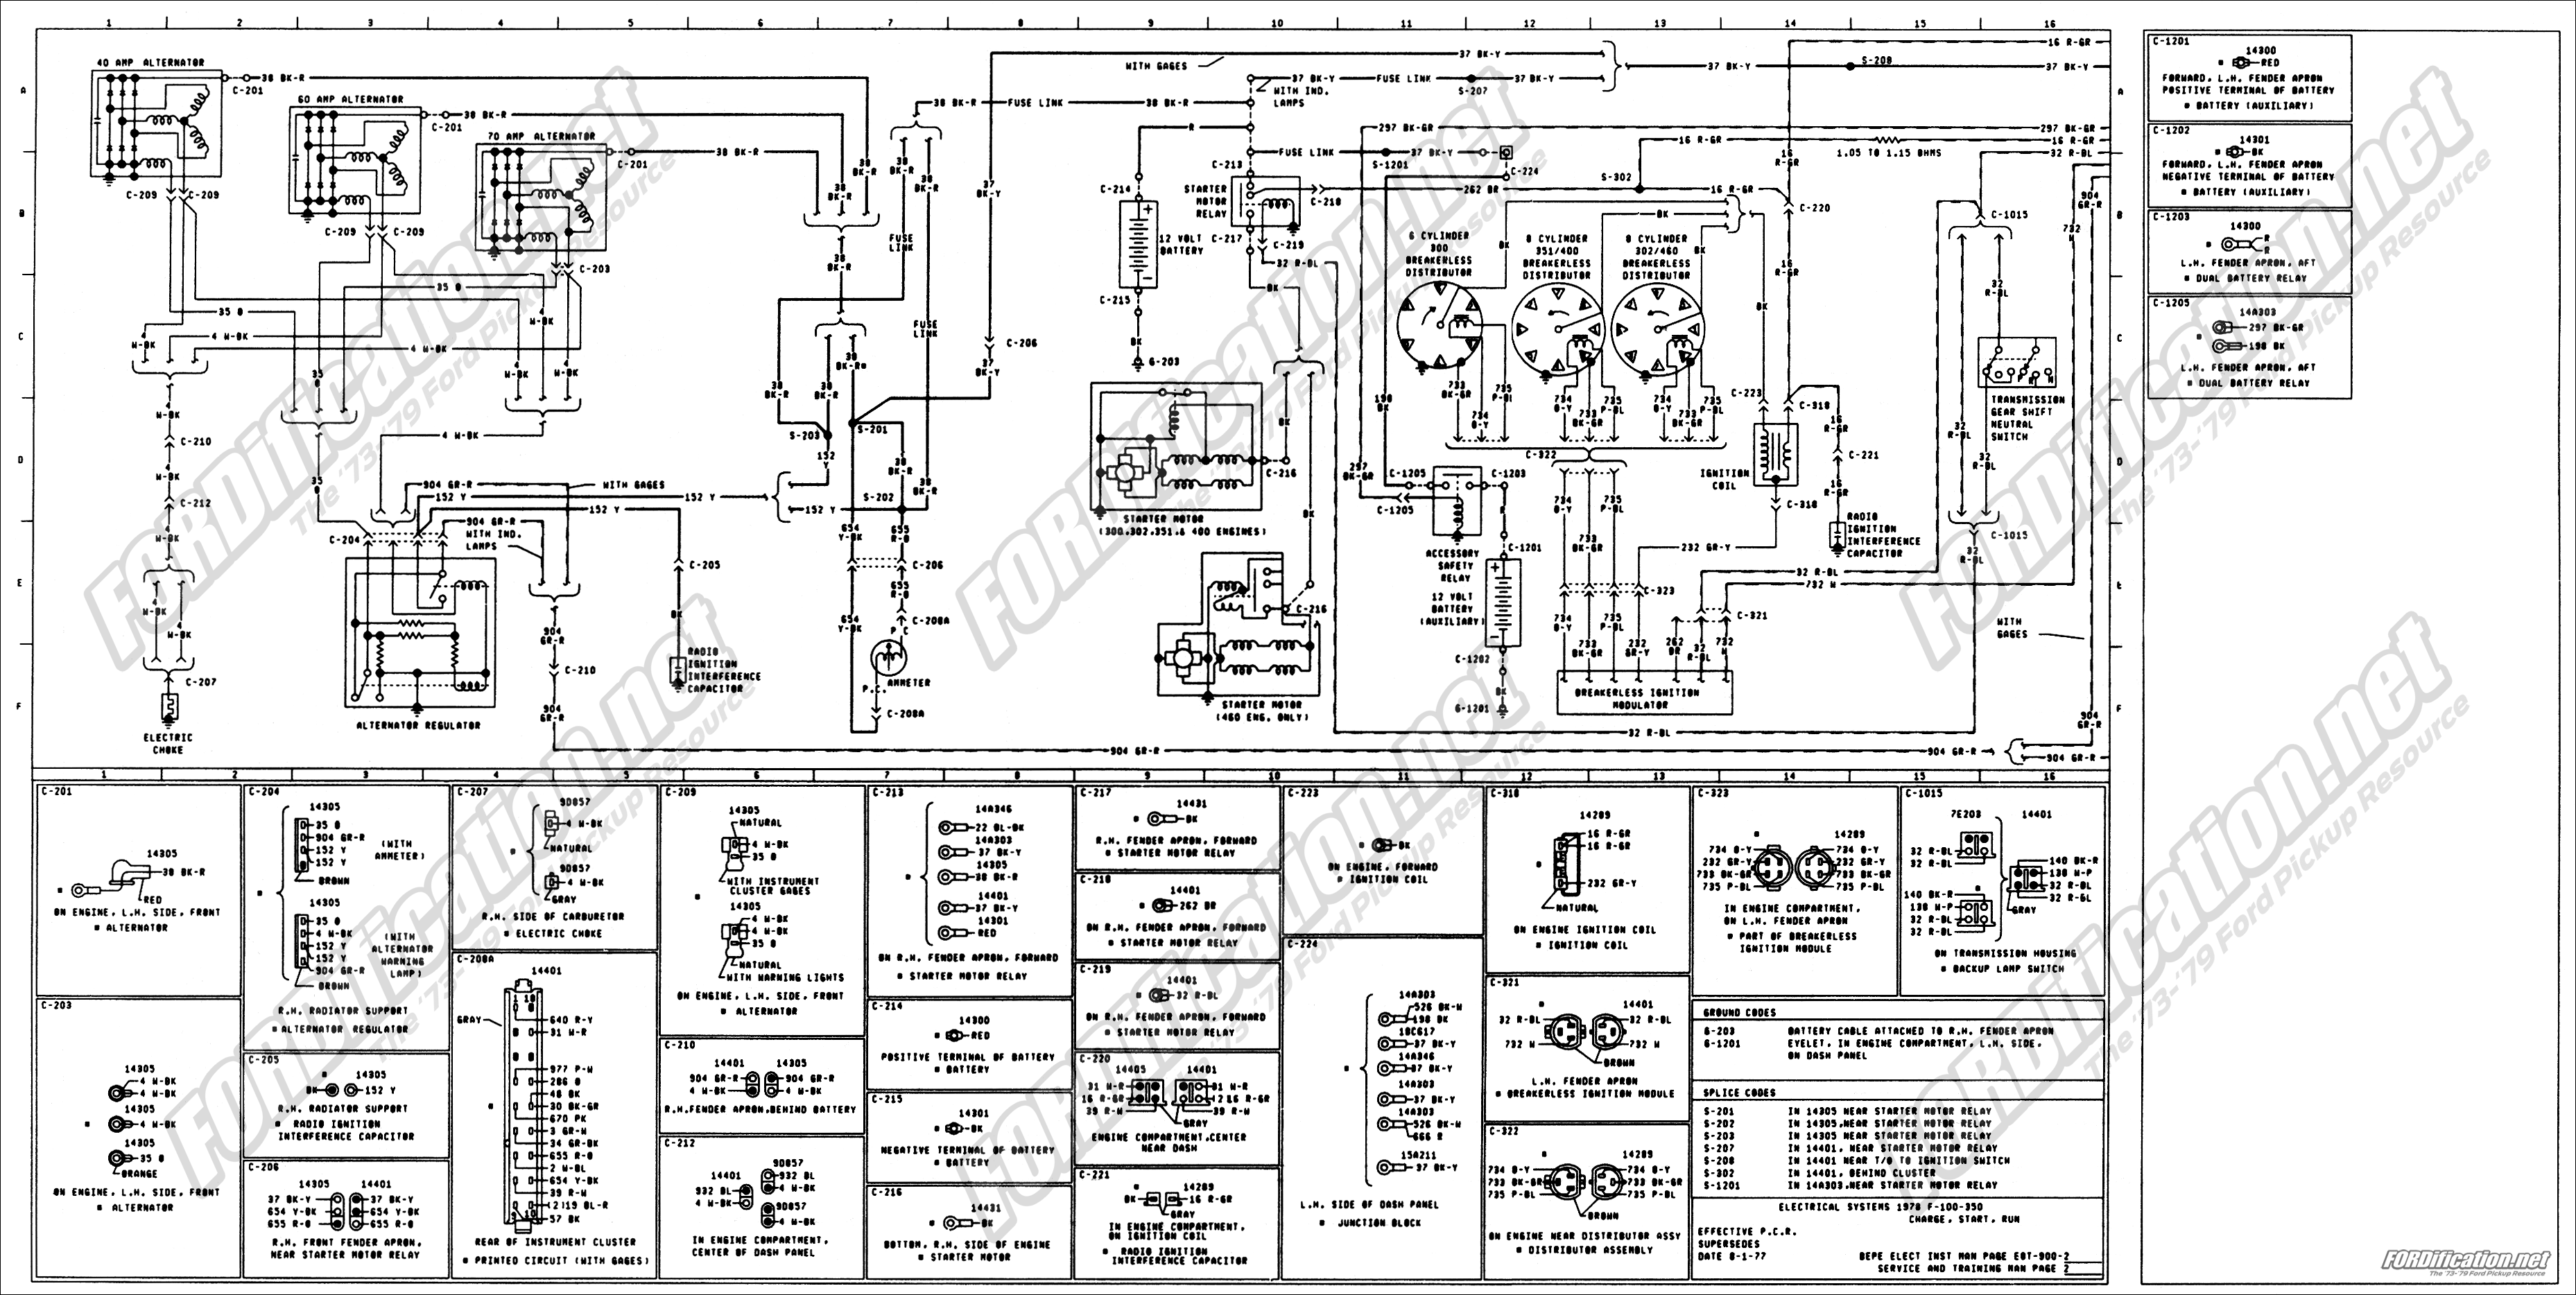 1973-1979 Ford Truck Wiring Diagrams & Schematics - FORDification.net